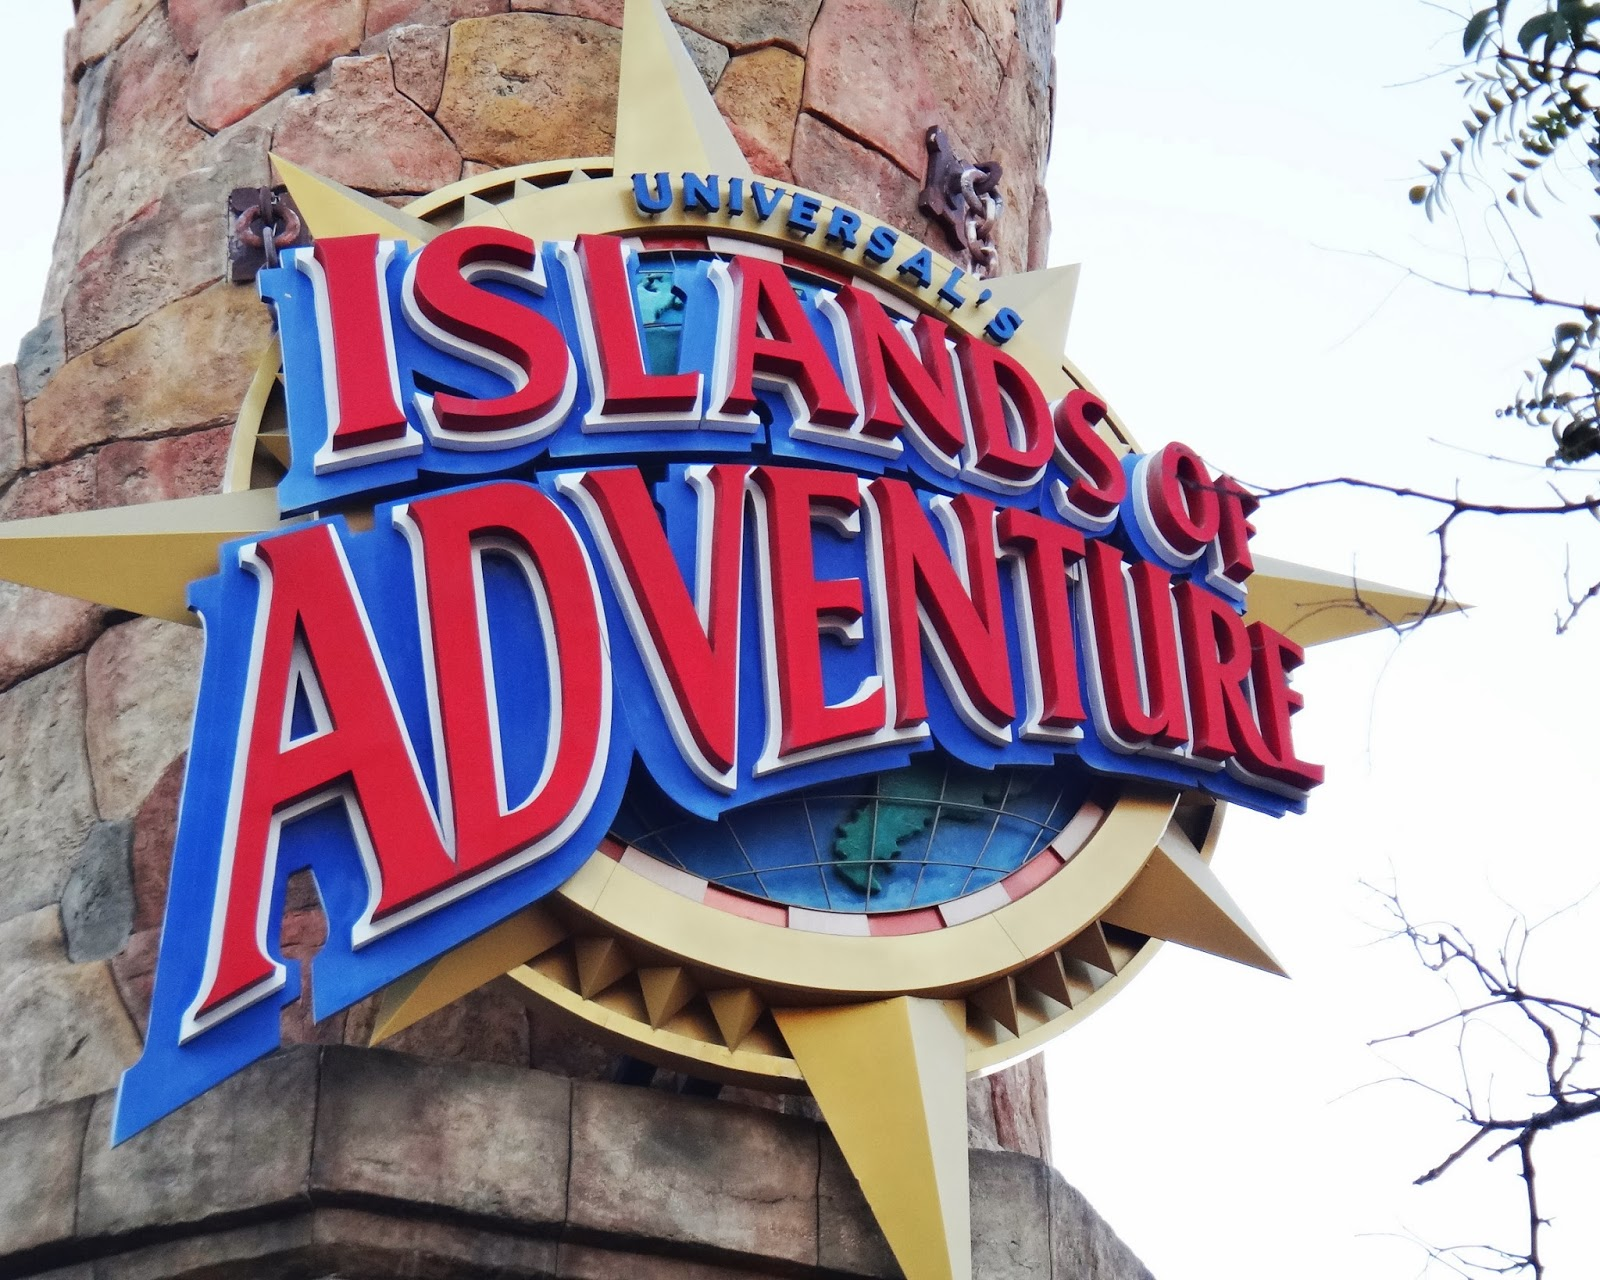 Universal Studios, Florida, Islands Adventure, travel